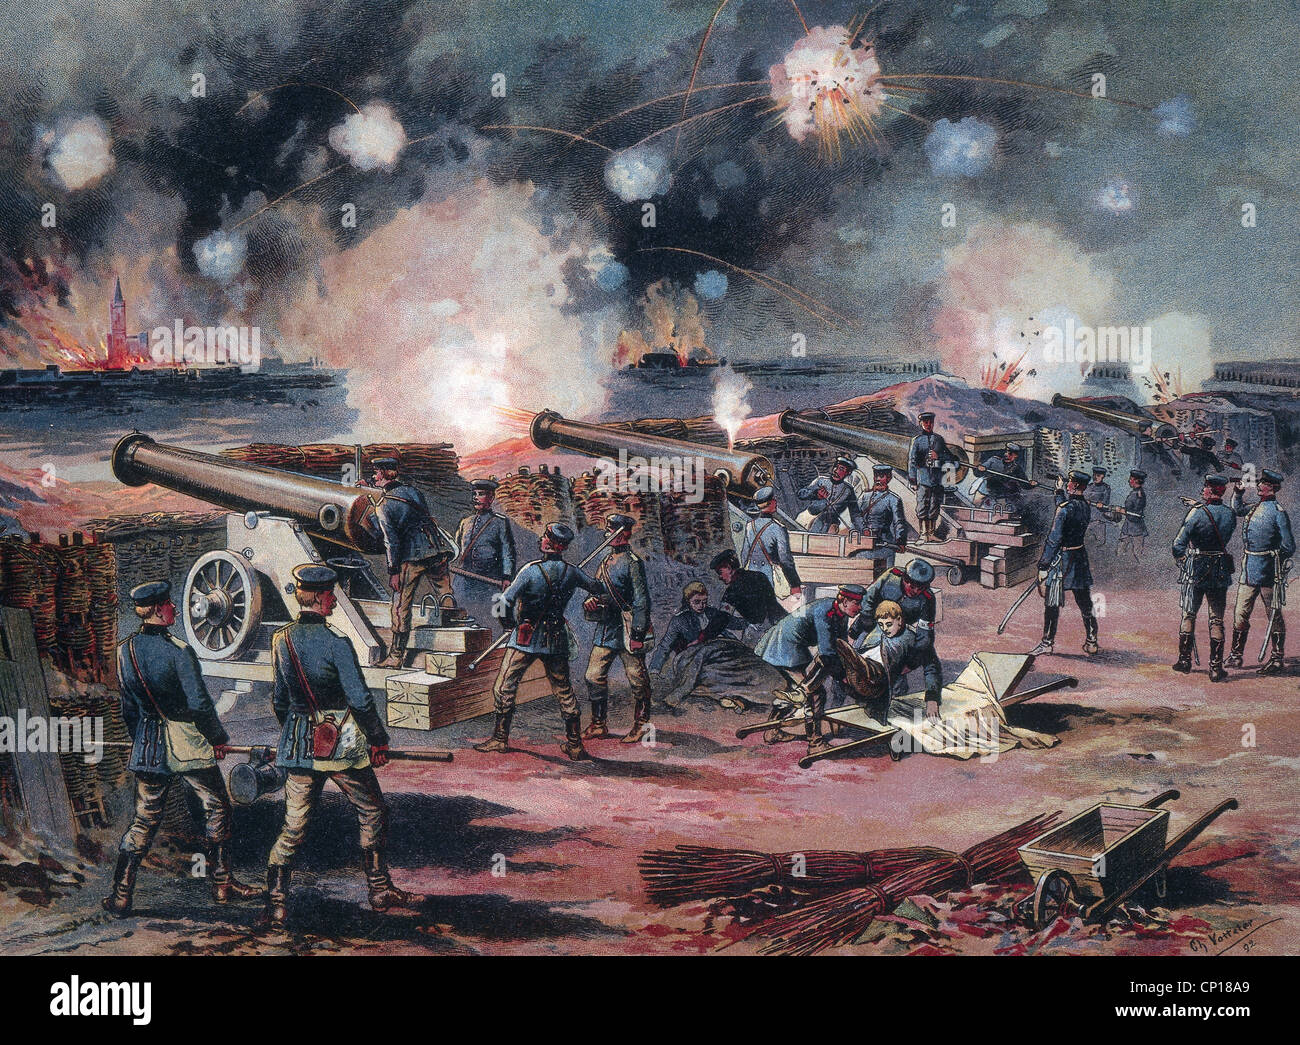 events, Franco-Prussian War 1870 - 1871, siege of Strassbourg, 15.8. - 28.9.1870, barrage of the night of 23./24.8.1870, - Stock Image